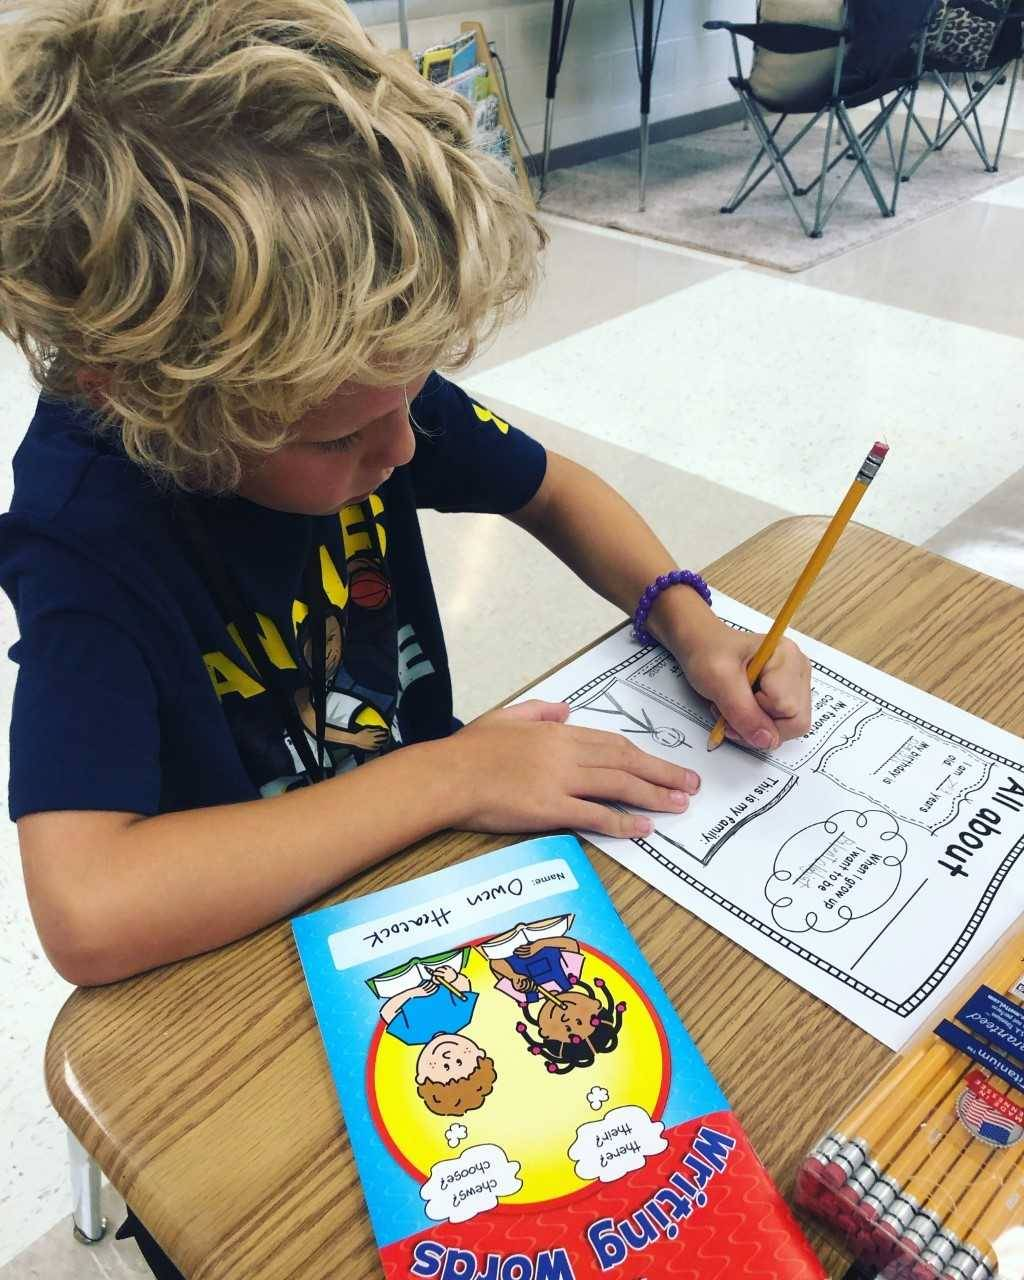 Second grade boy working on project